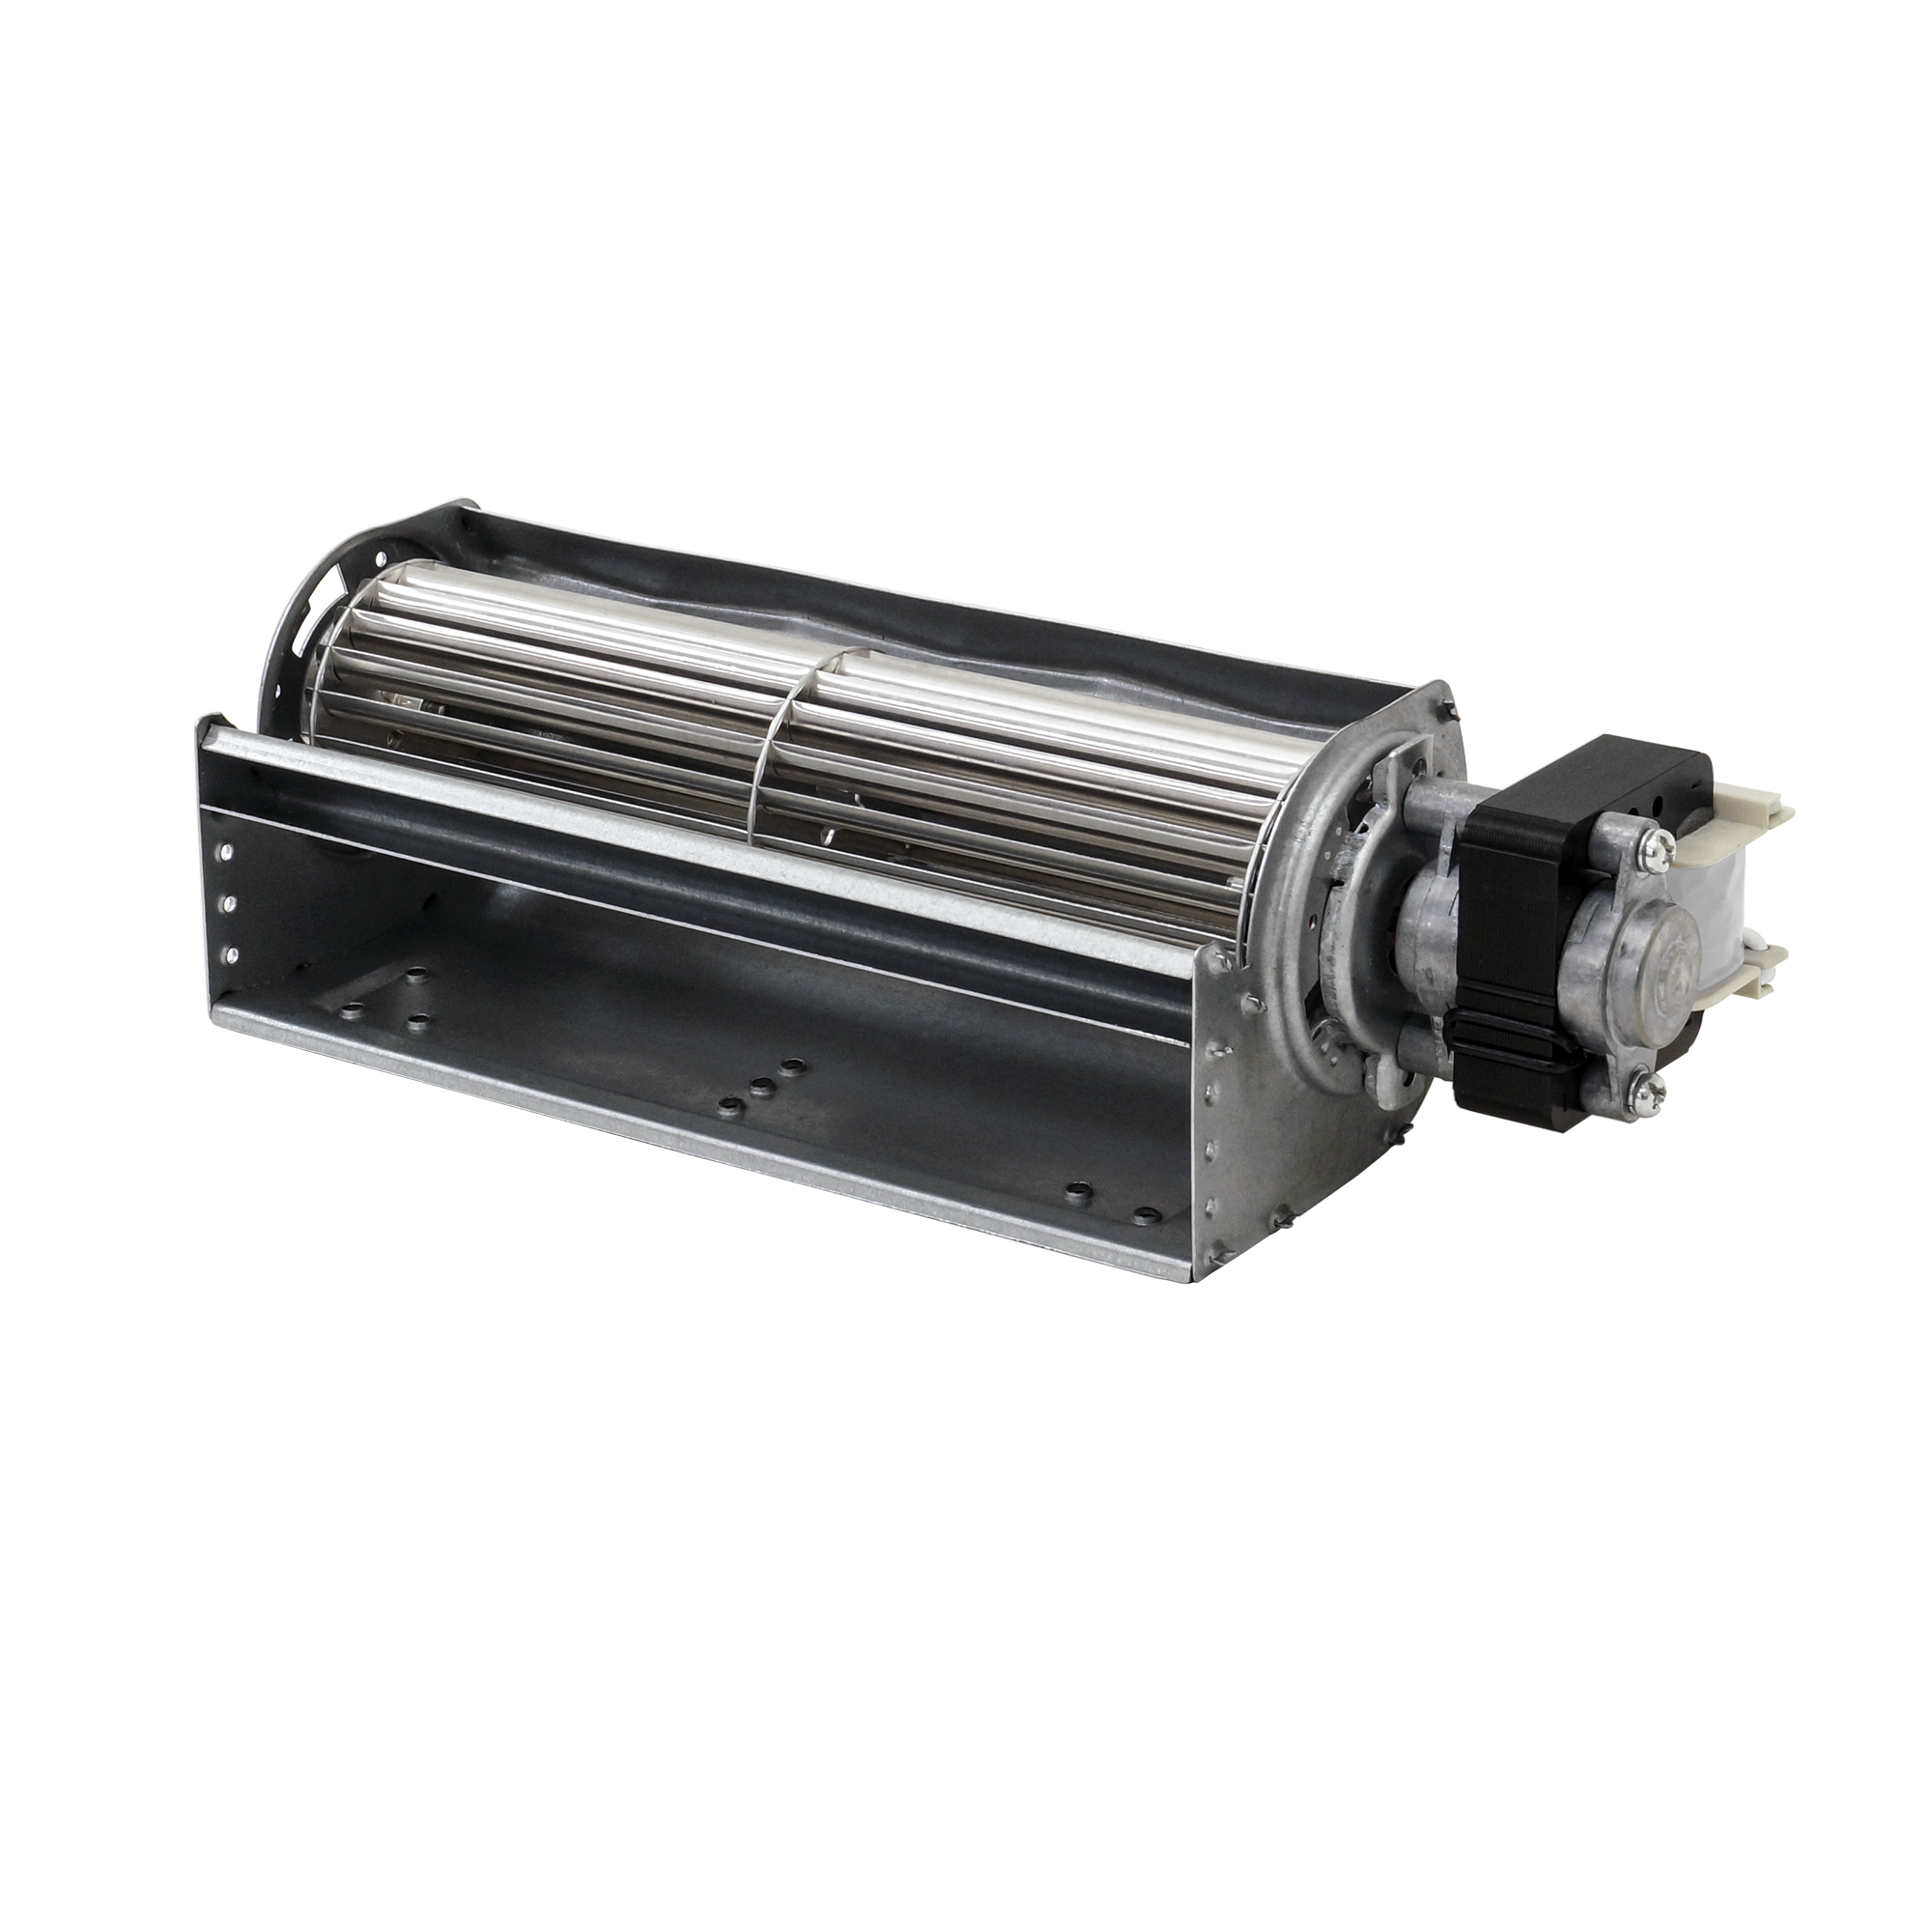 Pleasant Hearth Vent-Free Gas Fireplace Blower